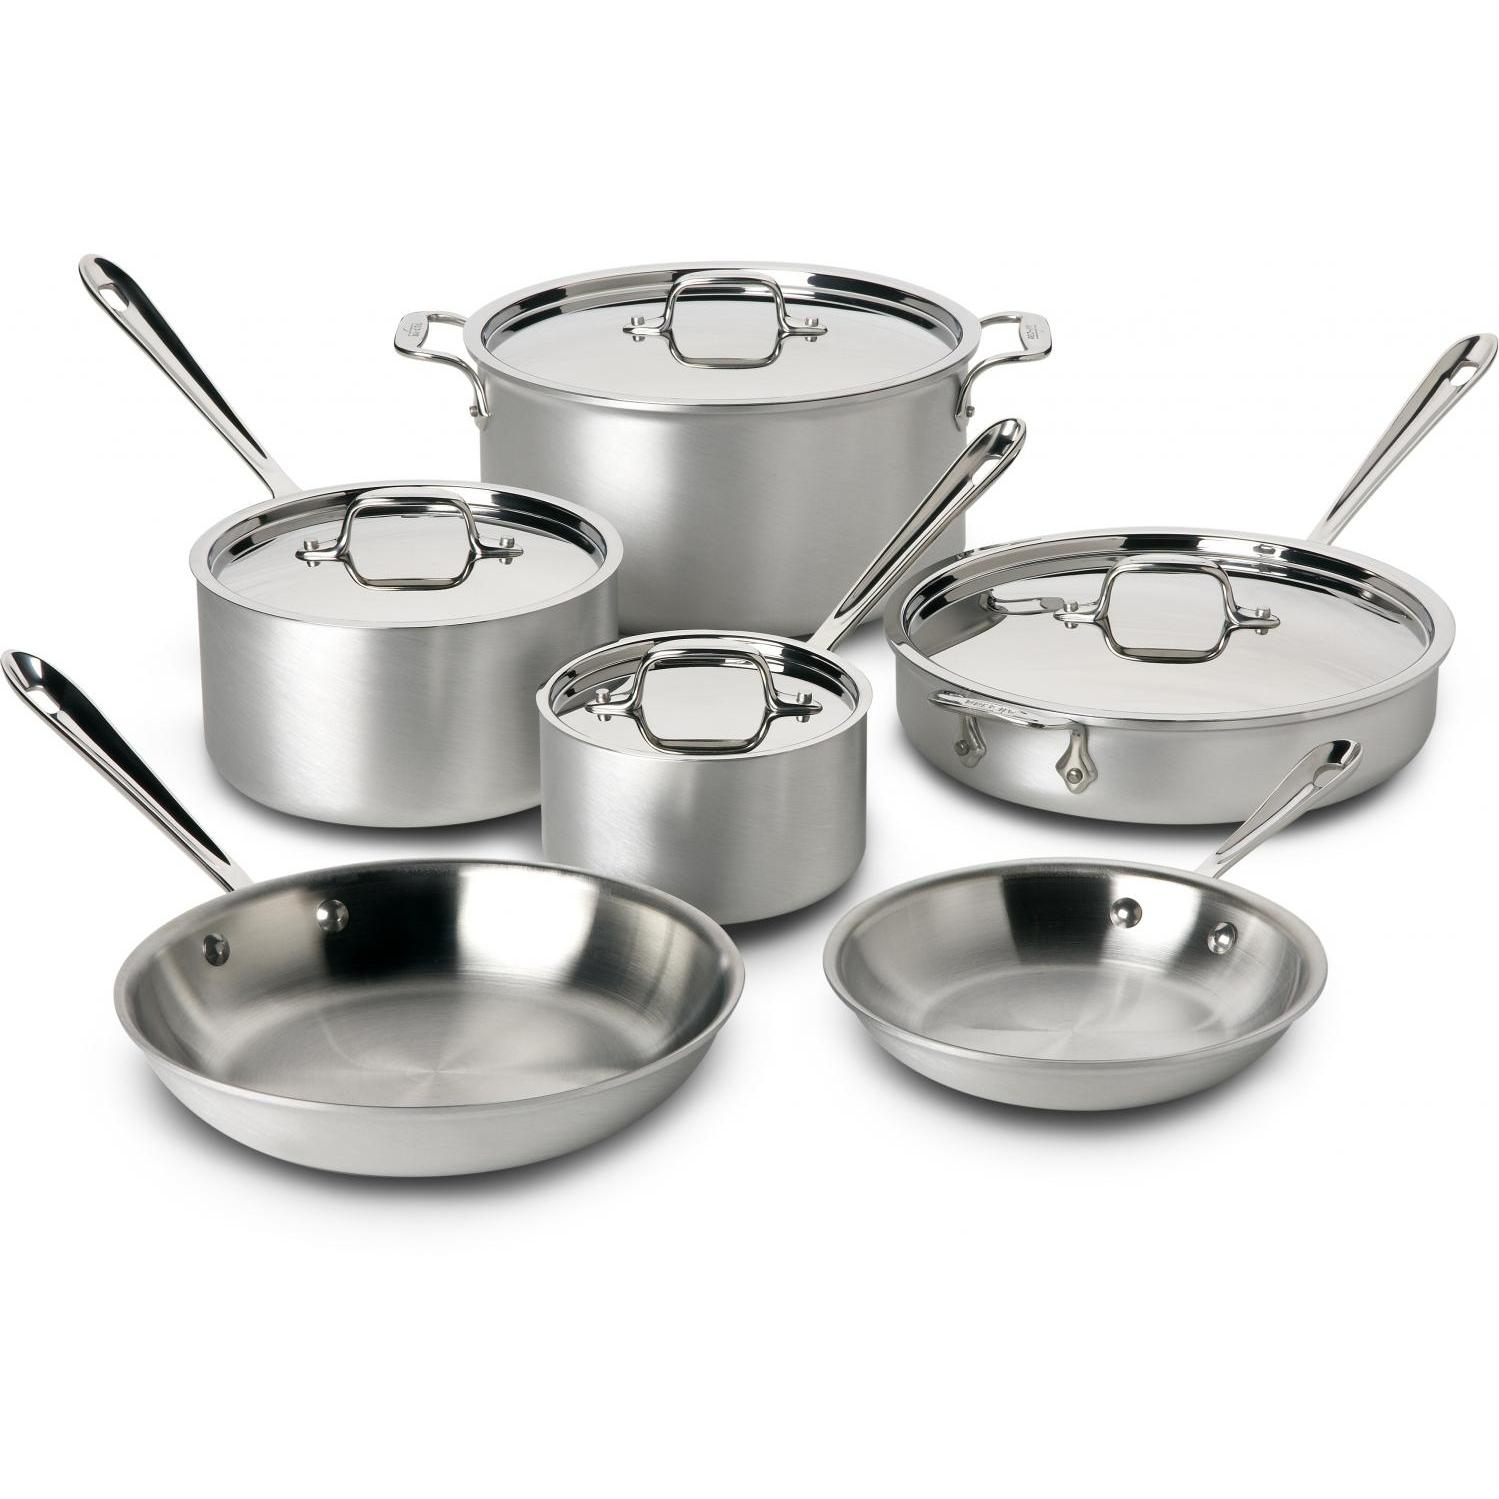 All-Clad Master Chef 2 Stainless 10-Piece Cookware Set